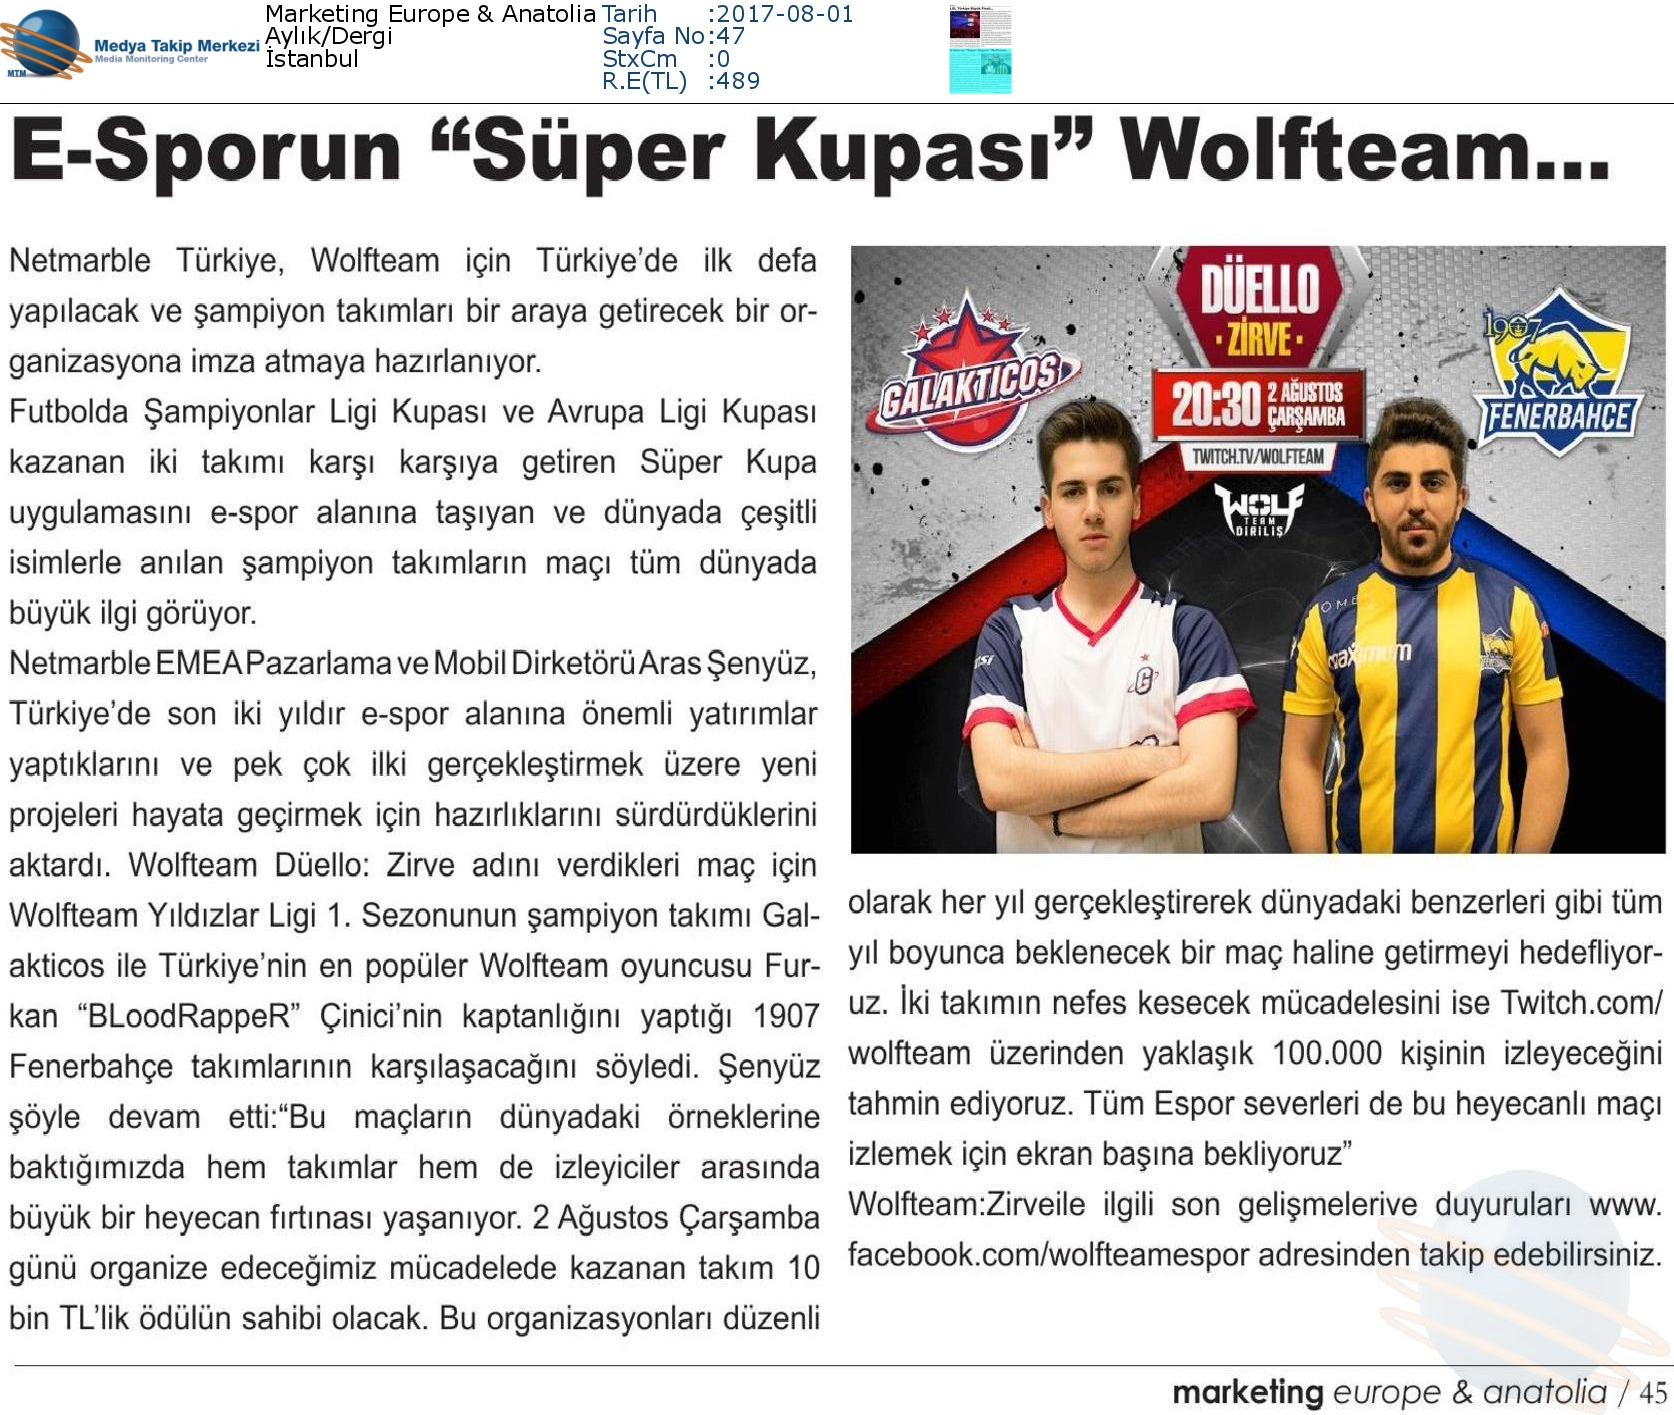 Marketing_Europe__Anatolia-E-SPORUN_SÜPER_KUPASI_VVOLFTEAM...-01.08.20171